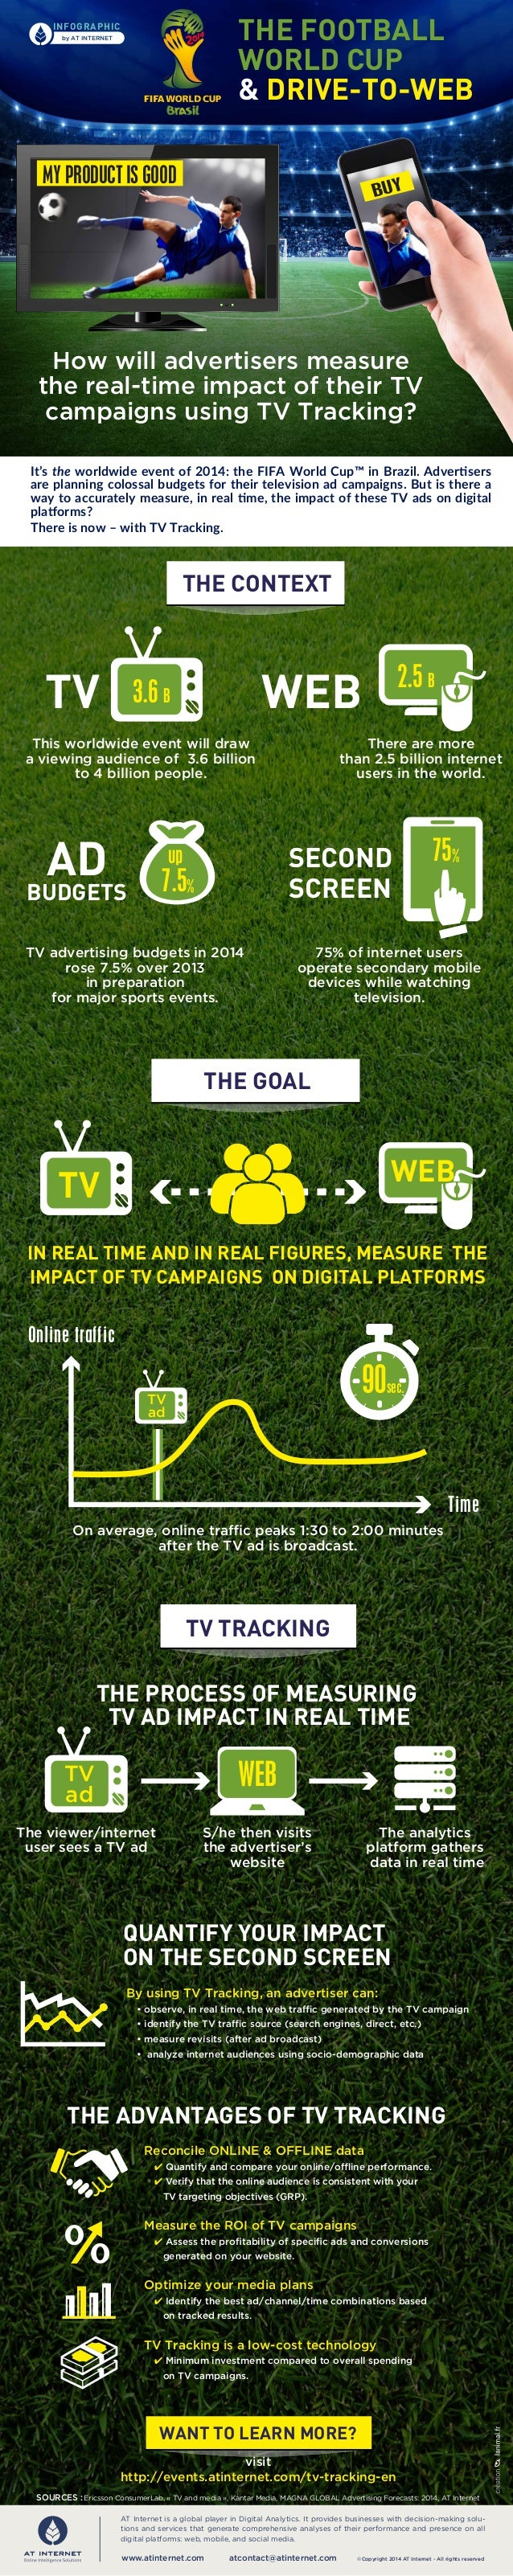 """[Infographic] World Cup 2014 & TV tracking: How can you measure """"drive-to-web""""?"""